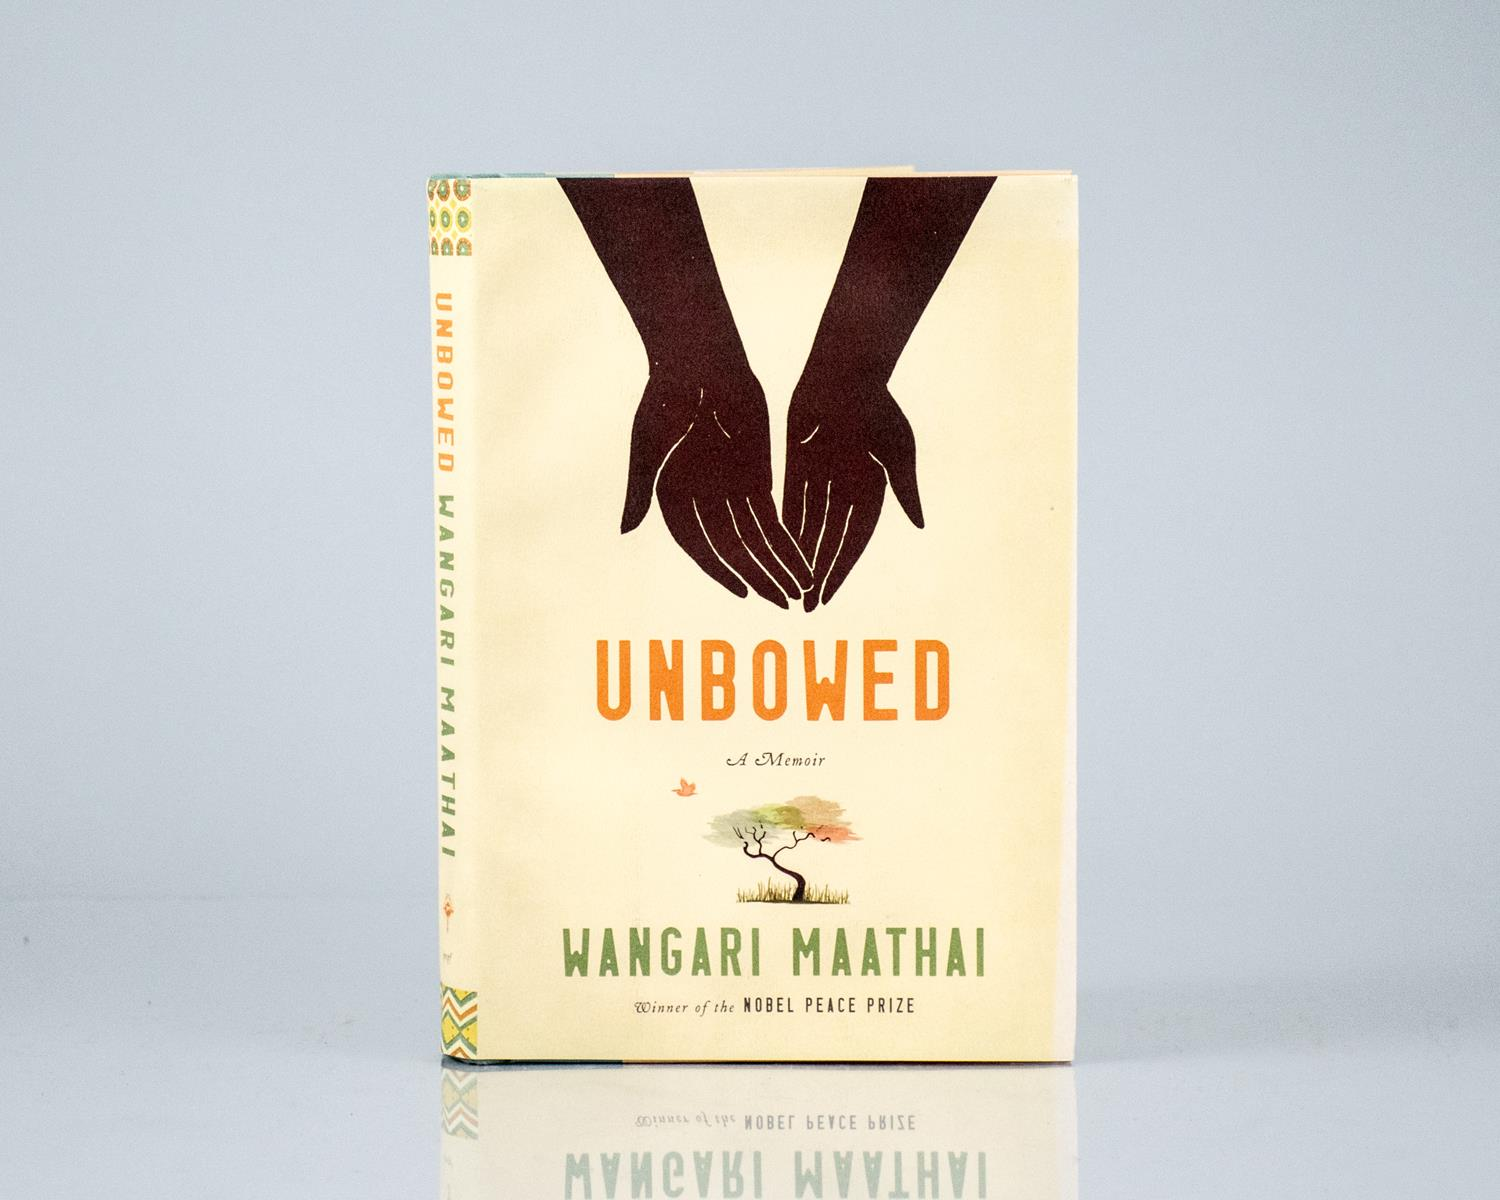 unbowed a memoir by wangari maathai (2006), unbowed: a memoir, and namulundah florence's (2014)  wangari  maathai was able to achieve a large degree of educational and.